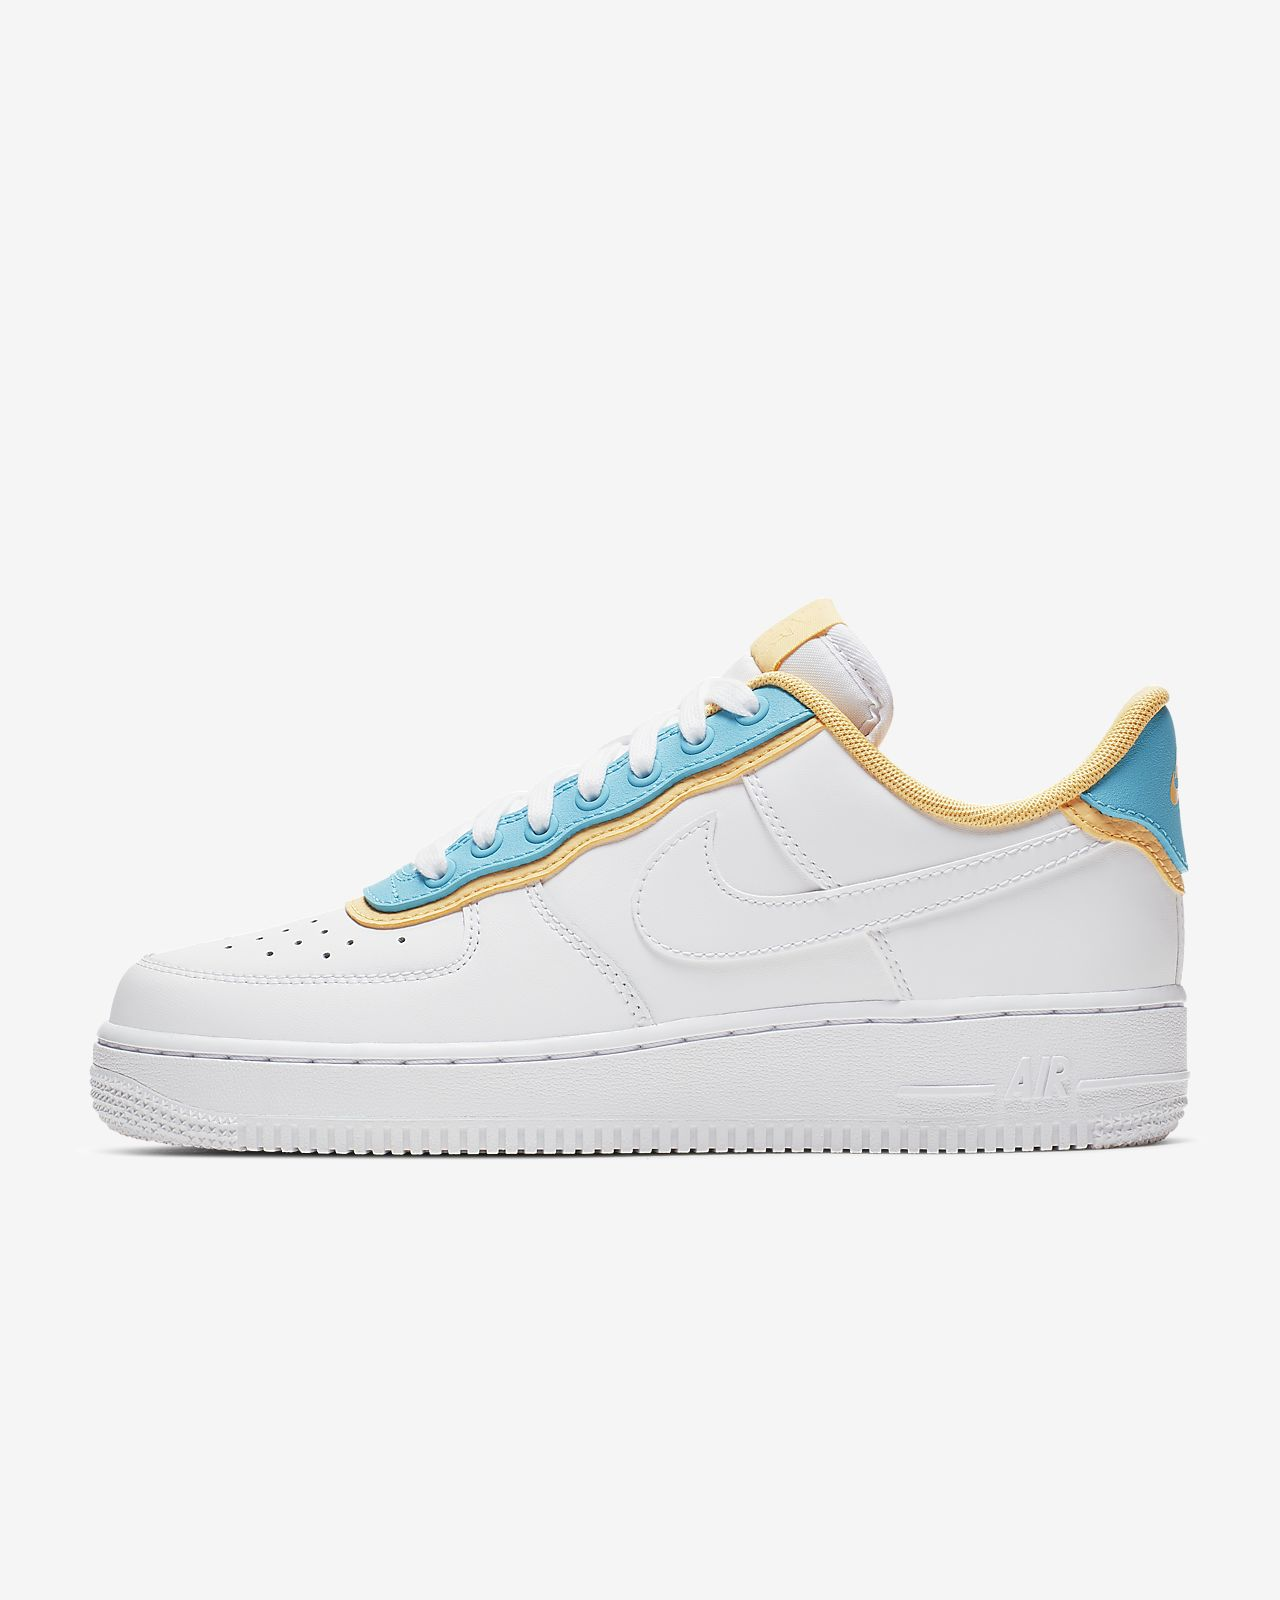 Nike Air Force 1 '07 SE Women's Shoe